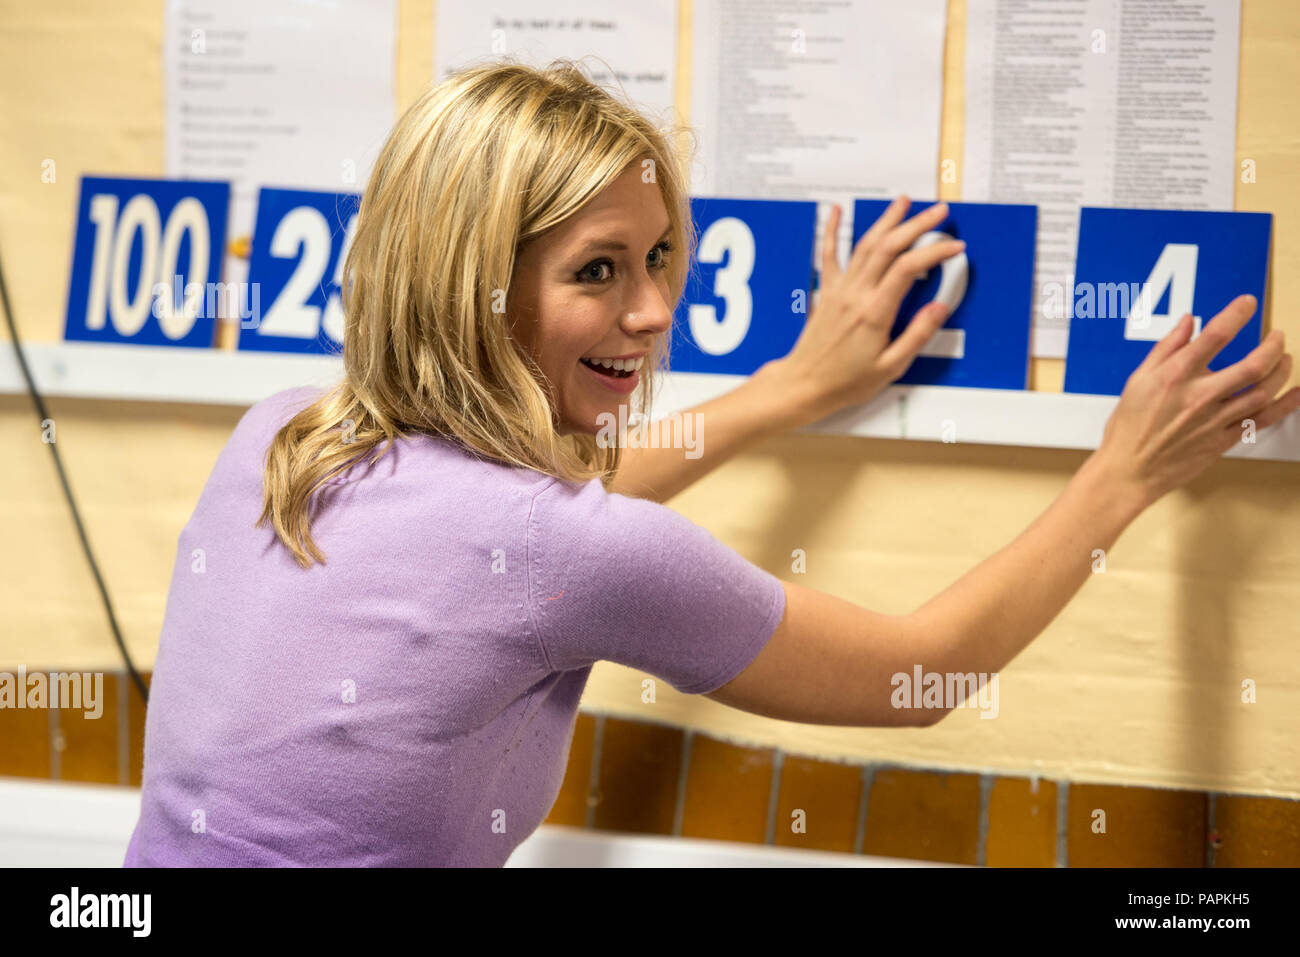 Photograph Of Rachel Riley Co Presenter Of Channel4 S Countdown And 8 Out Of 10 Cats Shown Here With The Numbers Used In The Tv Programme Stock Photo Alamy